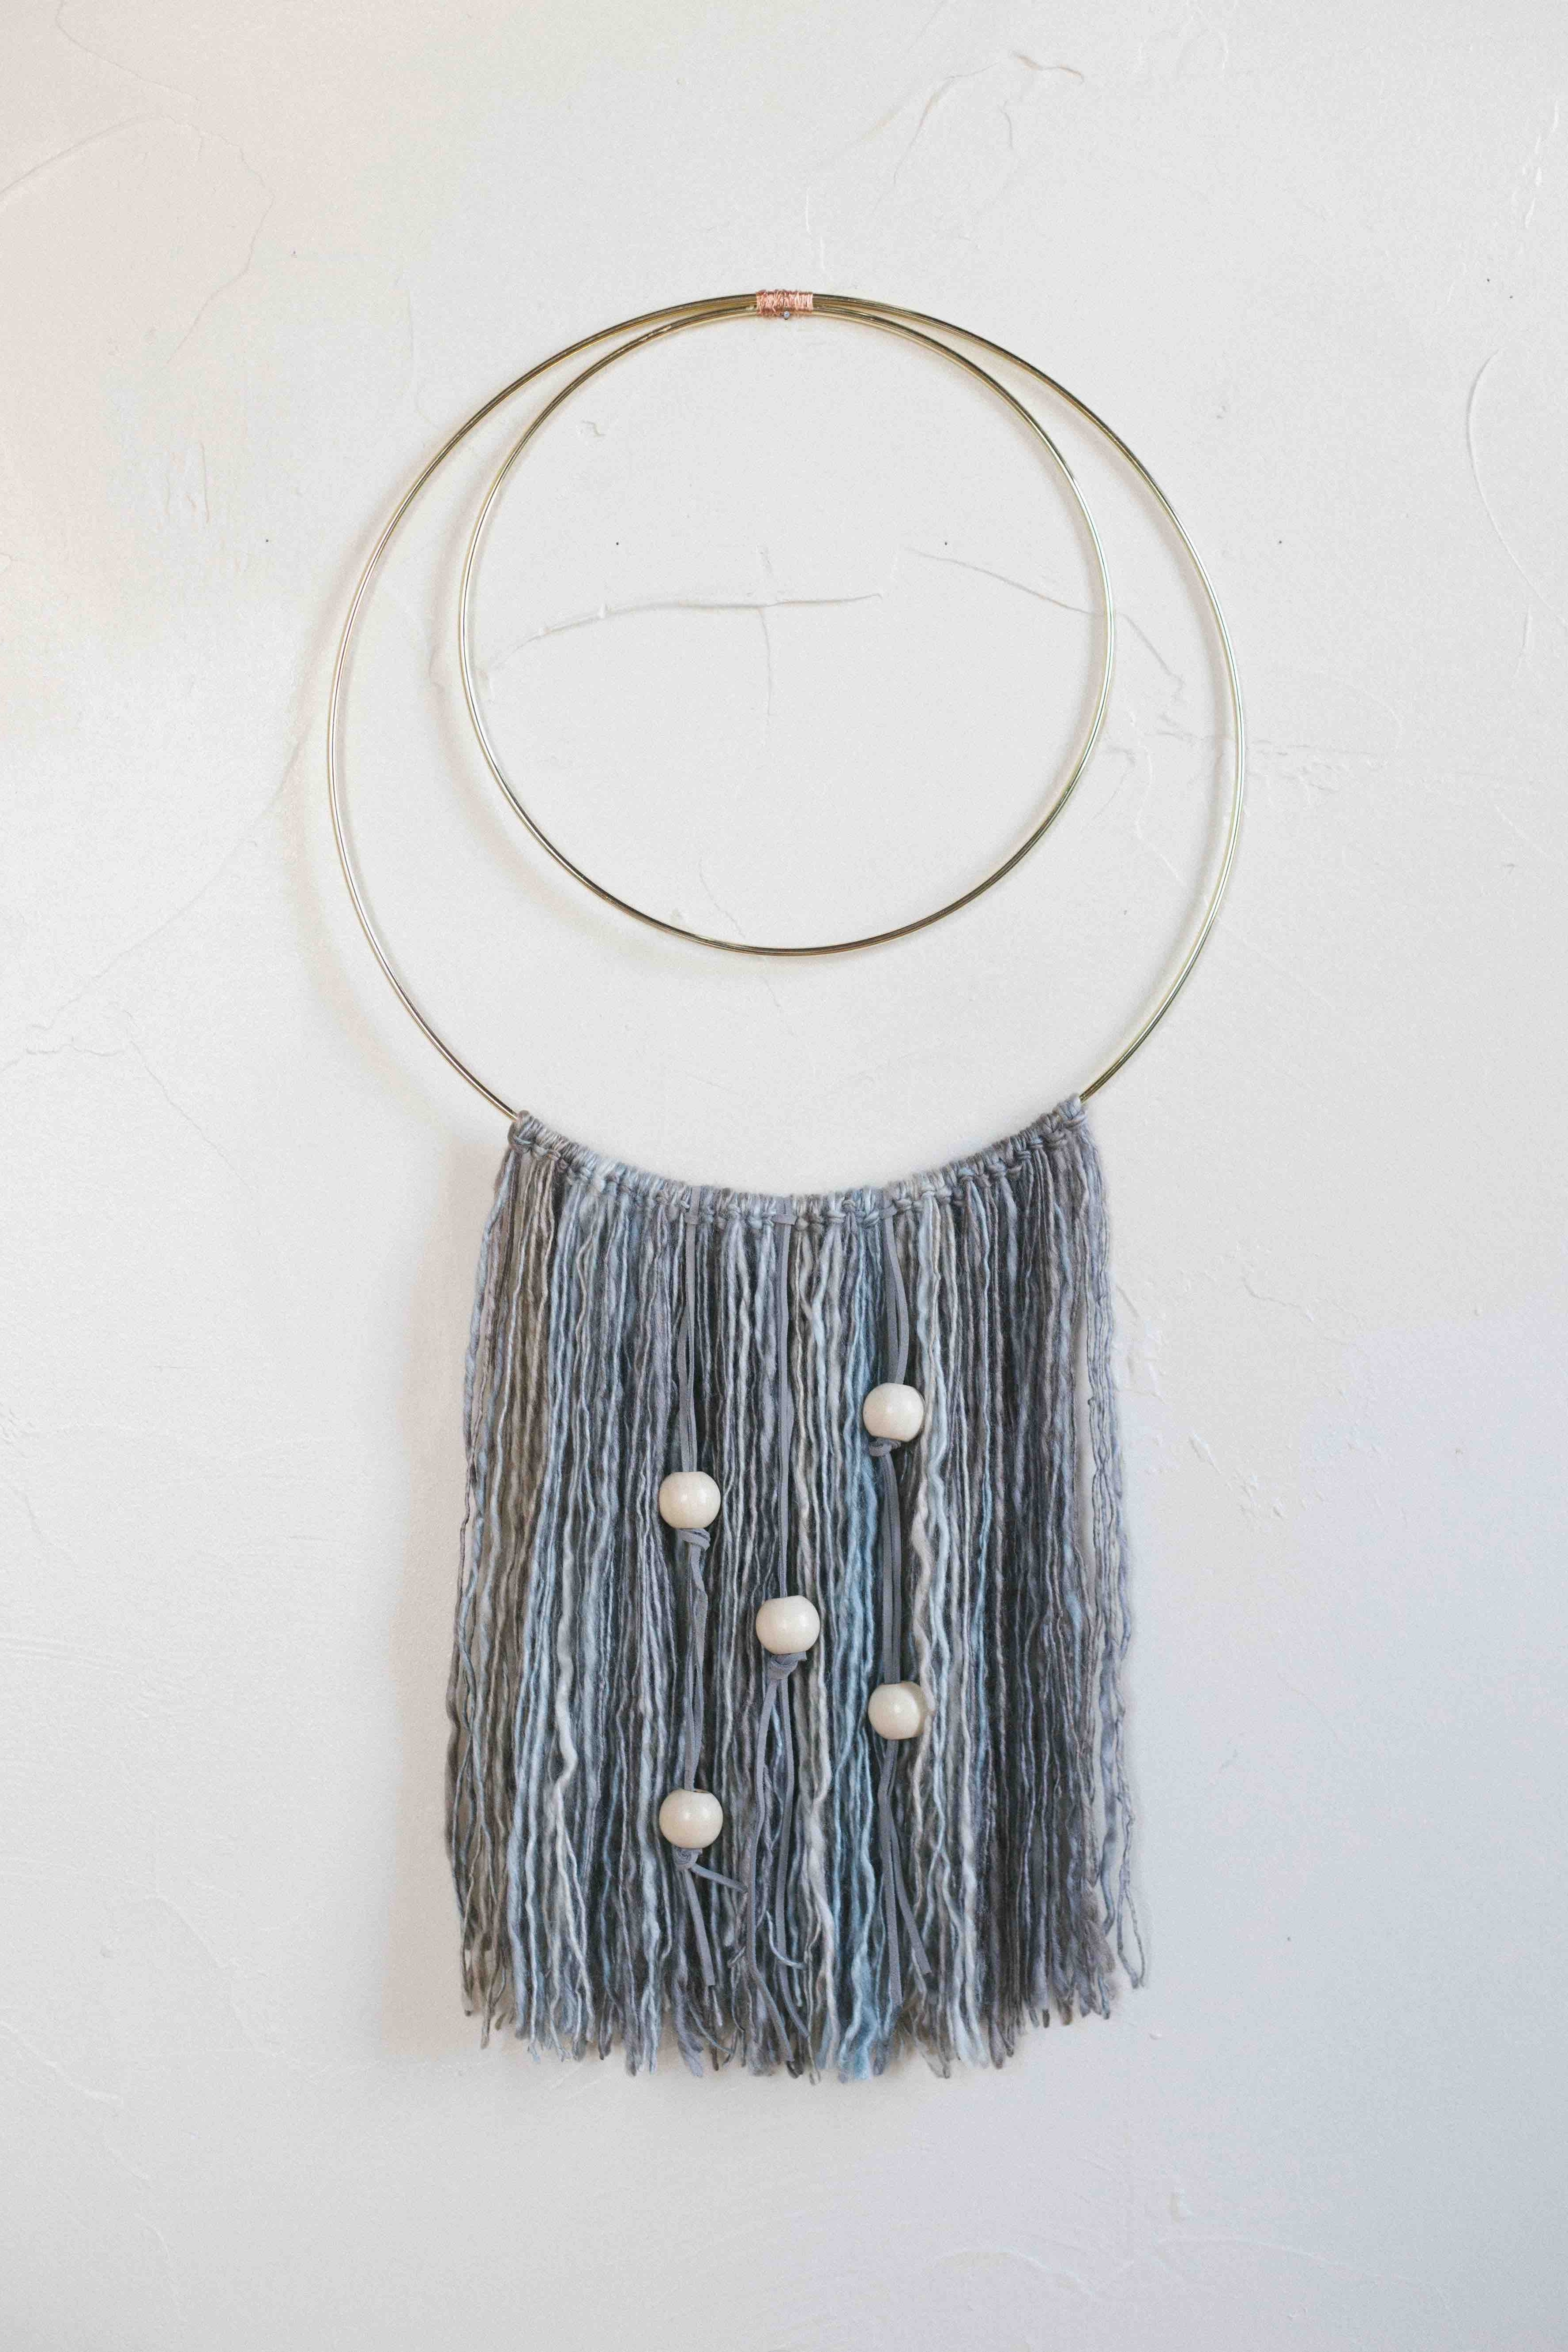 Best And Newest This Diy Anthropologie Inspired Wall Hanging Is A Must (View 6 of 15)